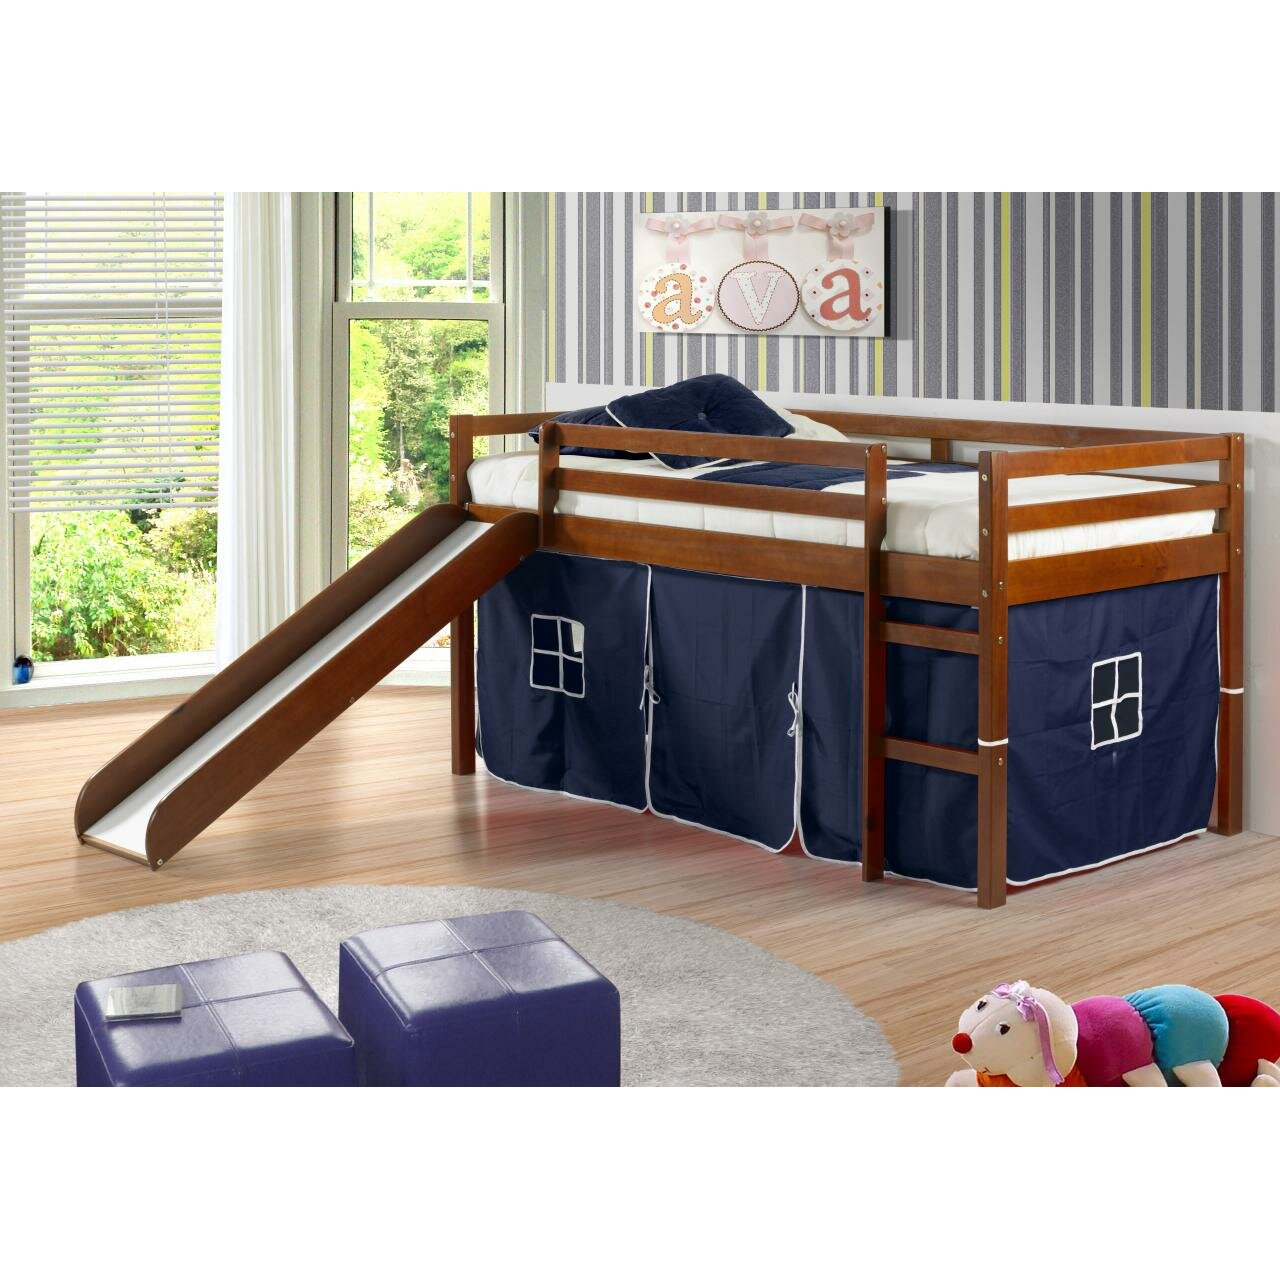 Kids loft beds with slide - Tent Twin Low Loft Bed With Slide